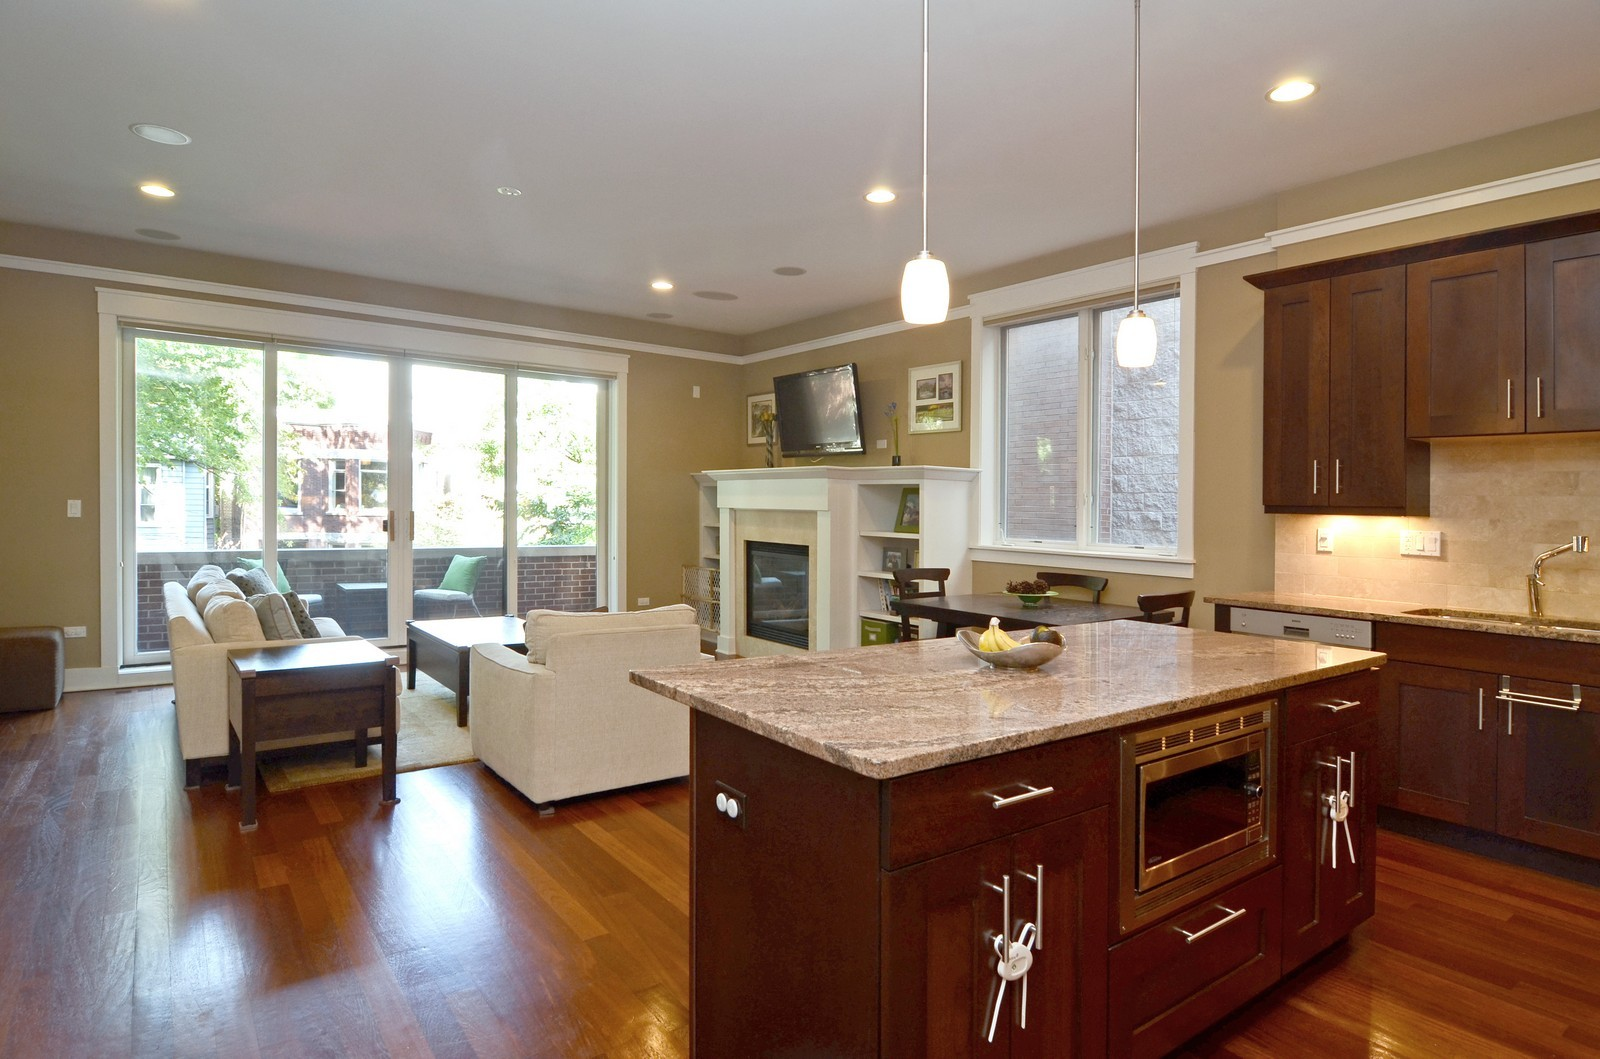 Real Estate Photography - 639 W Briar, Unit 2E, Chicago, IL, 60610 - Kitchen